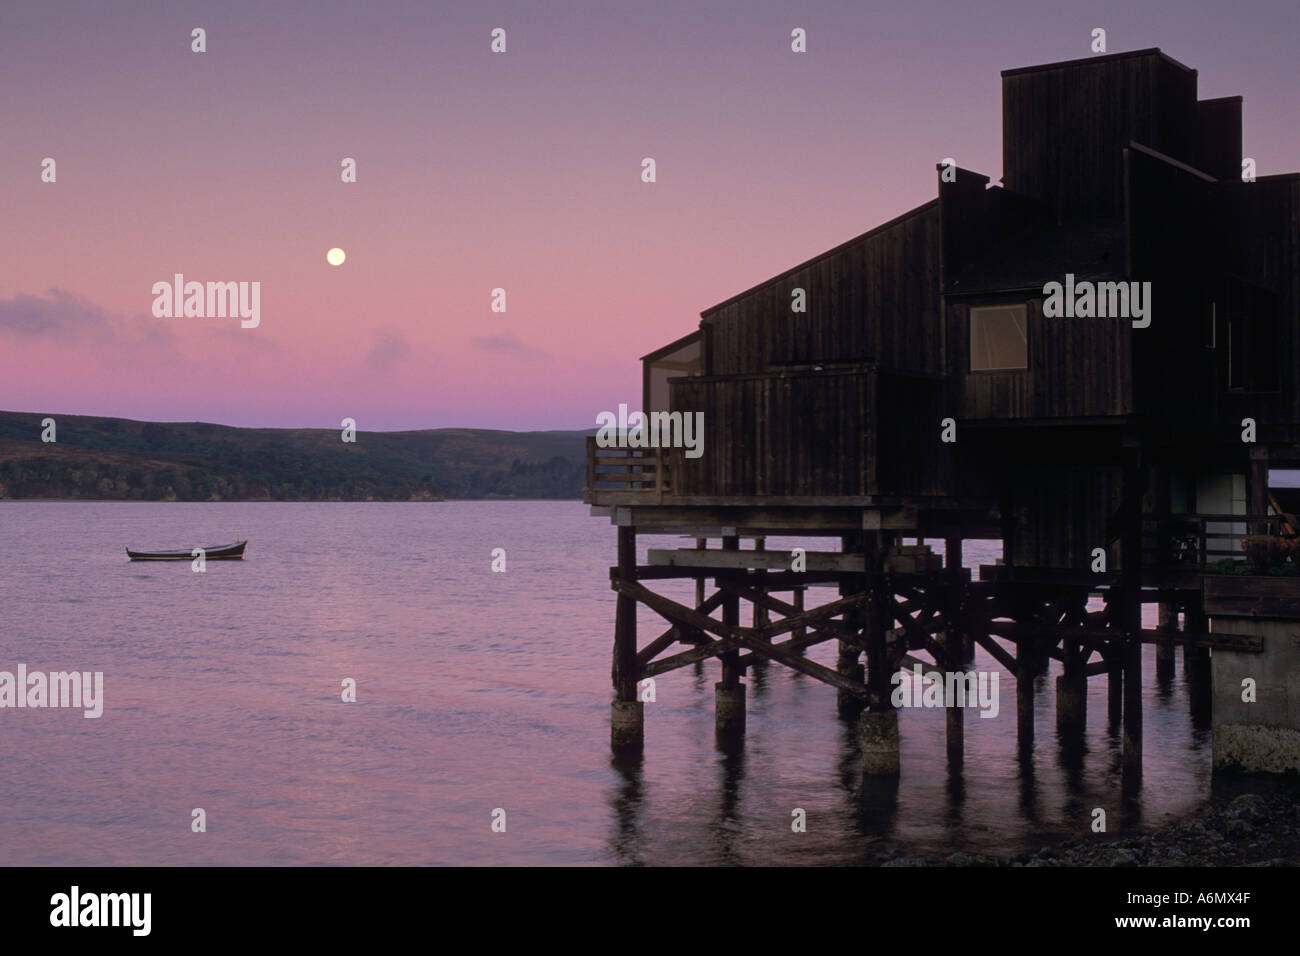 Wooden House On Stilts Over Water And Full Moon Set At Dawn Tomales Bay  Marin County California